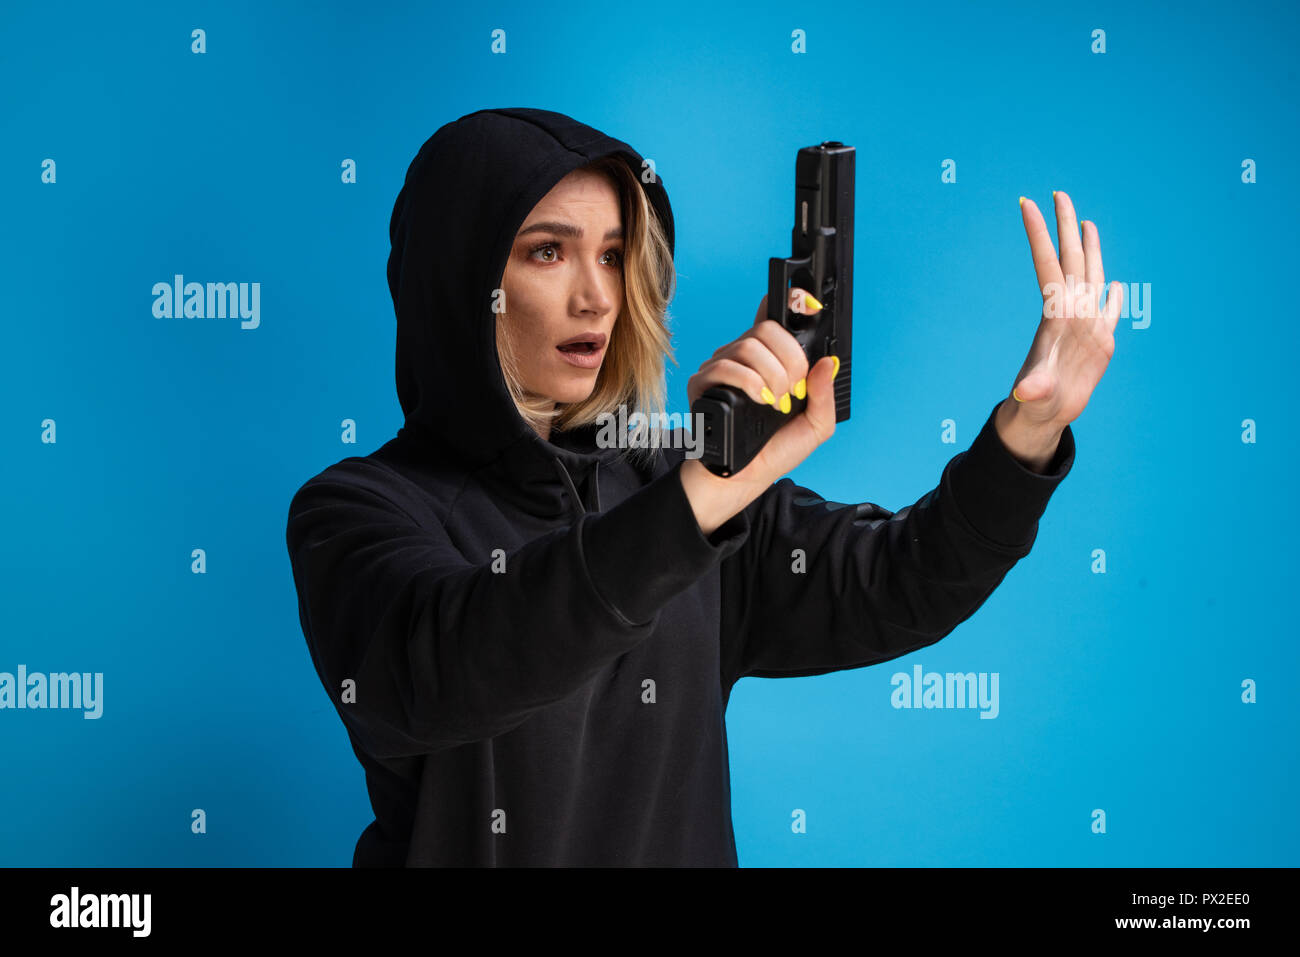 Hooded young girl presenting gun while surrendering. Airsoft game loser - Stock Image